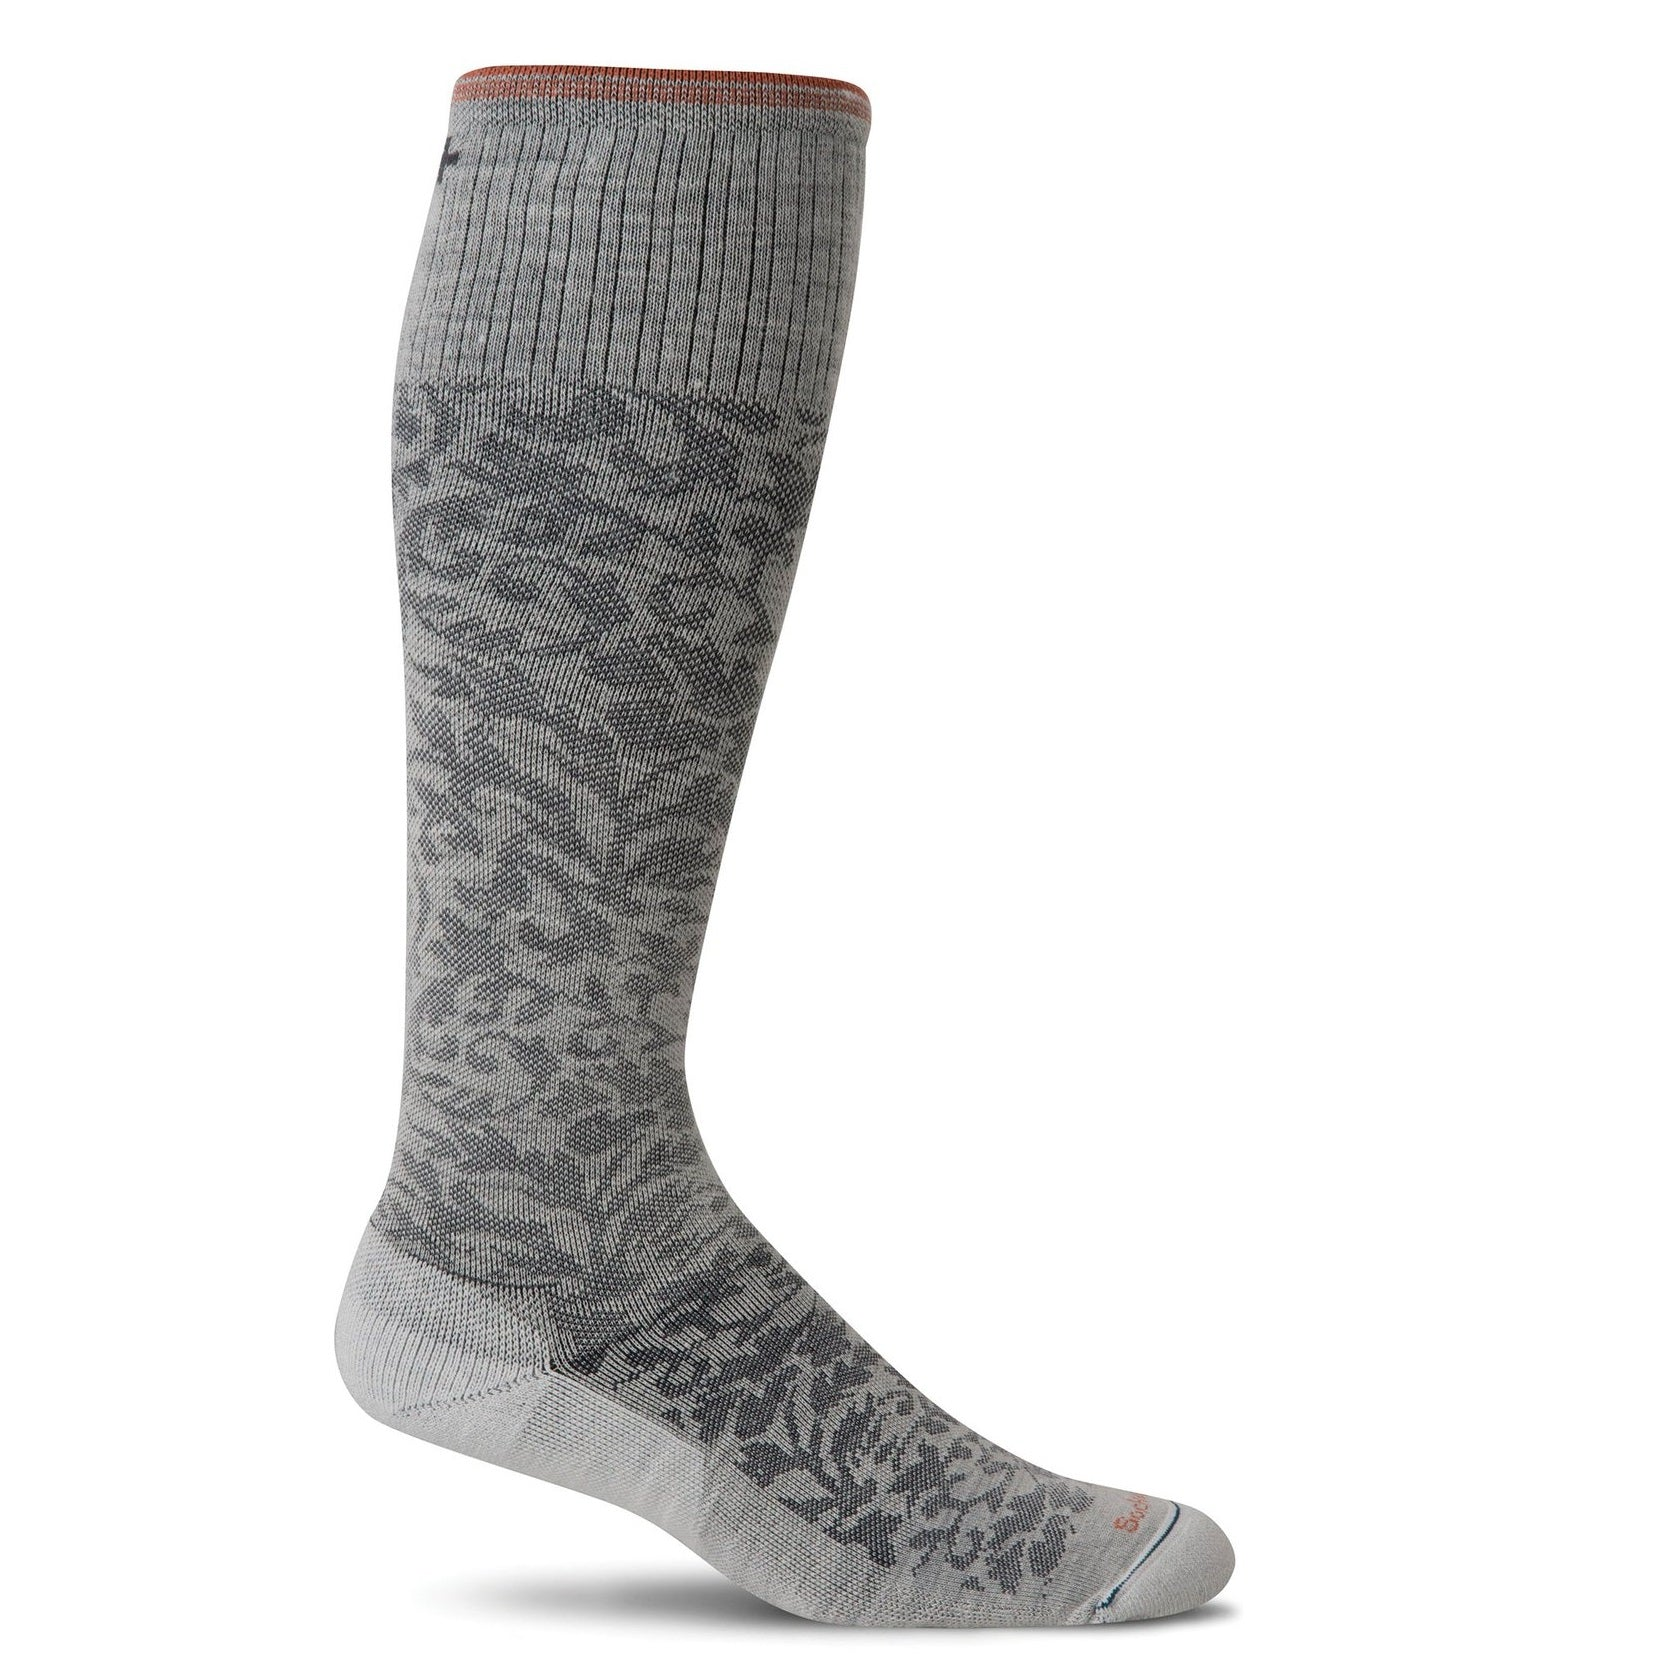 Sockwell Women's Damask Graduted Compression Socks - Oyster